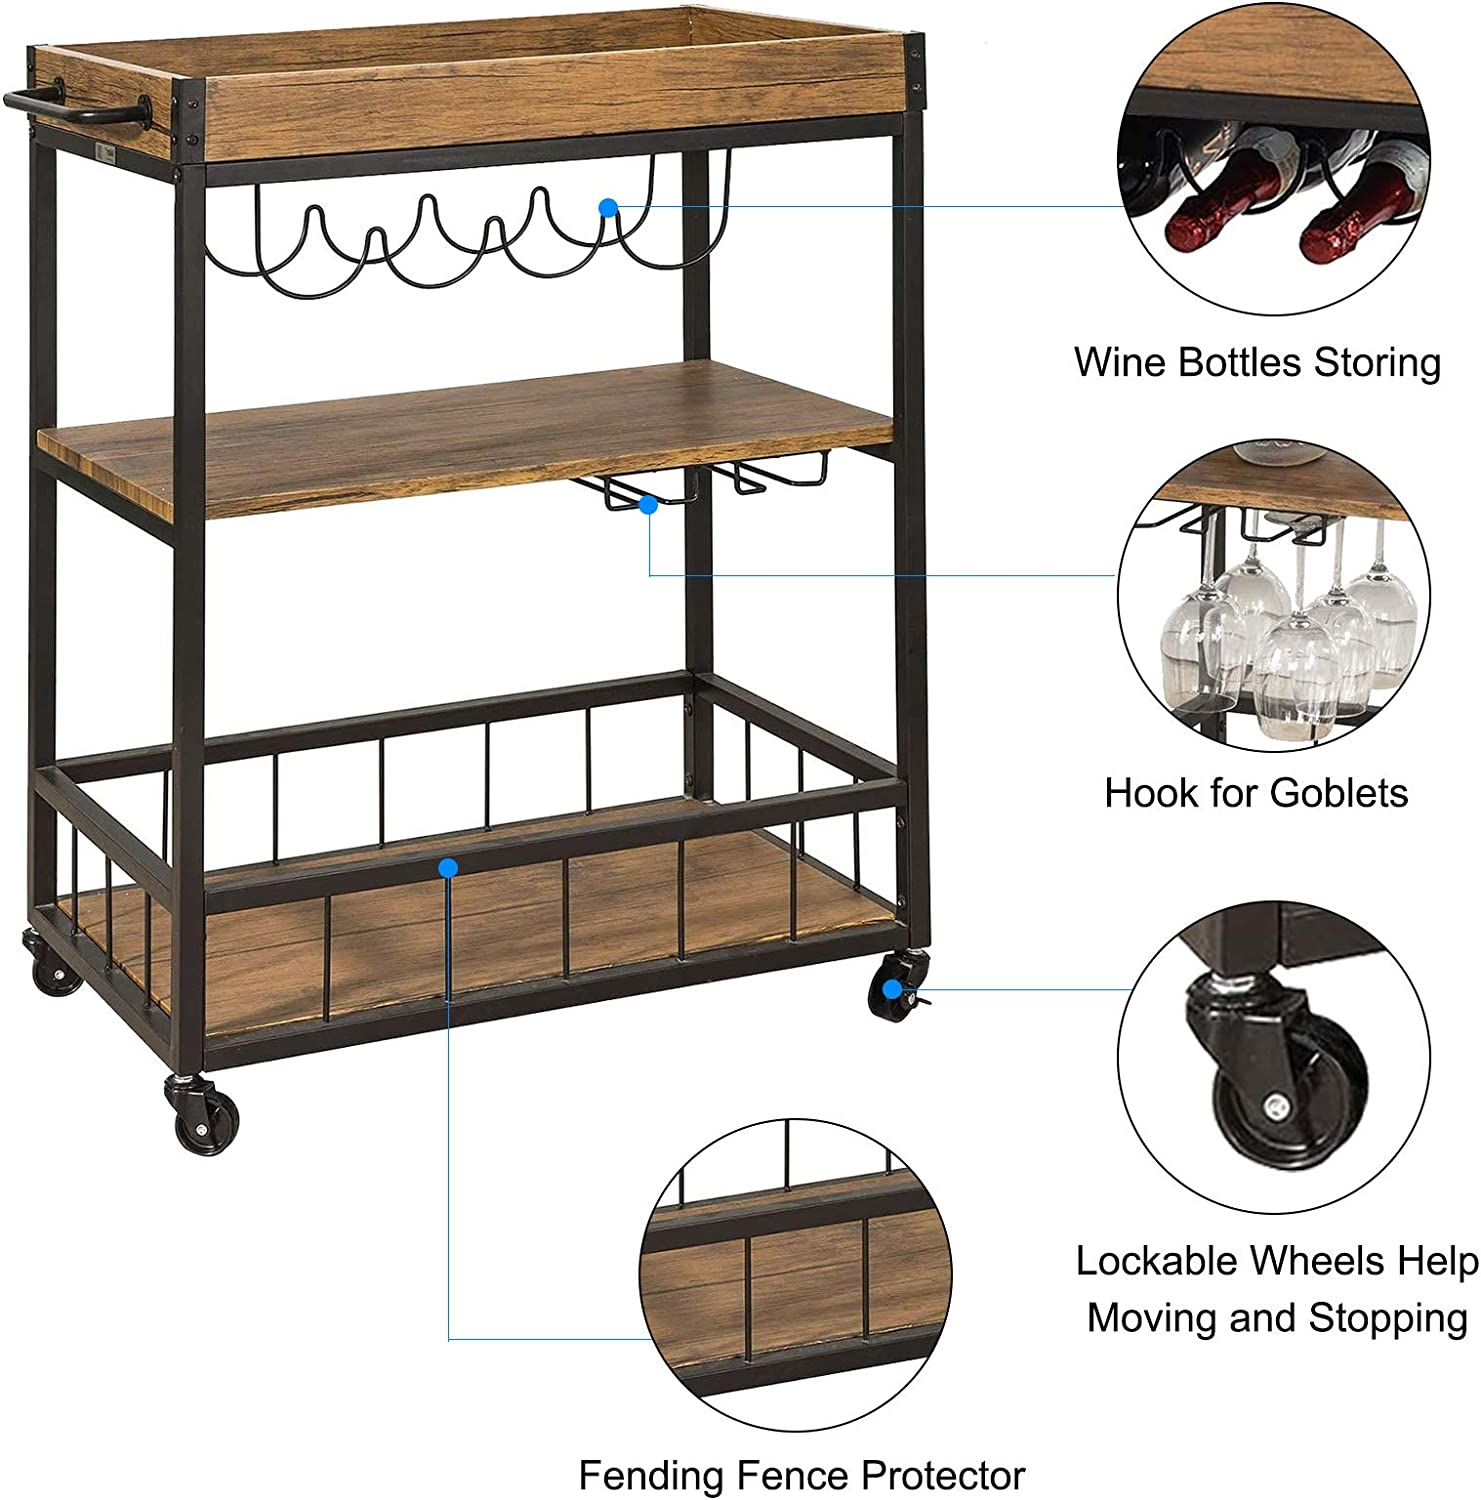 QCen Bar Carts for Home,Bar Serving Cart Home,Mobile Kitchen Serving cart with Storage Myra Rustic Design 35.2 H x 26.5 L x 16 W inches